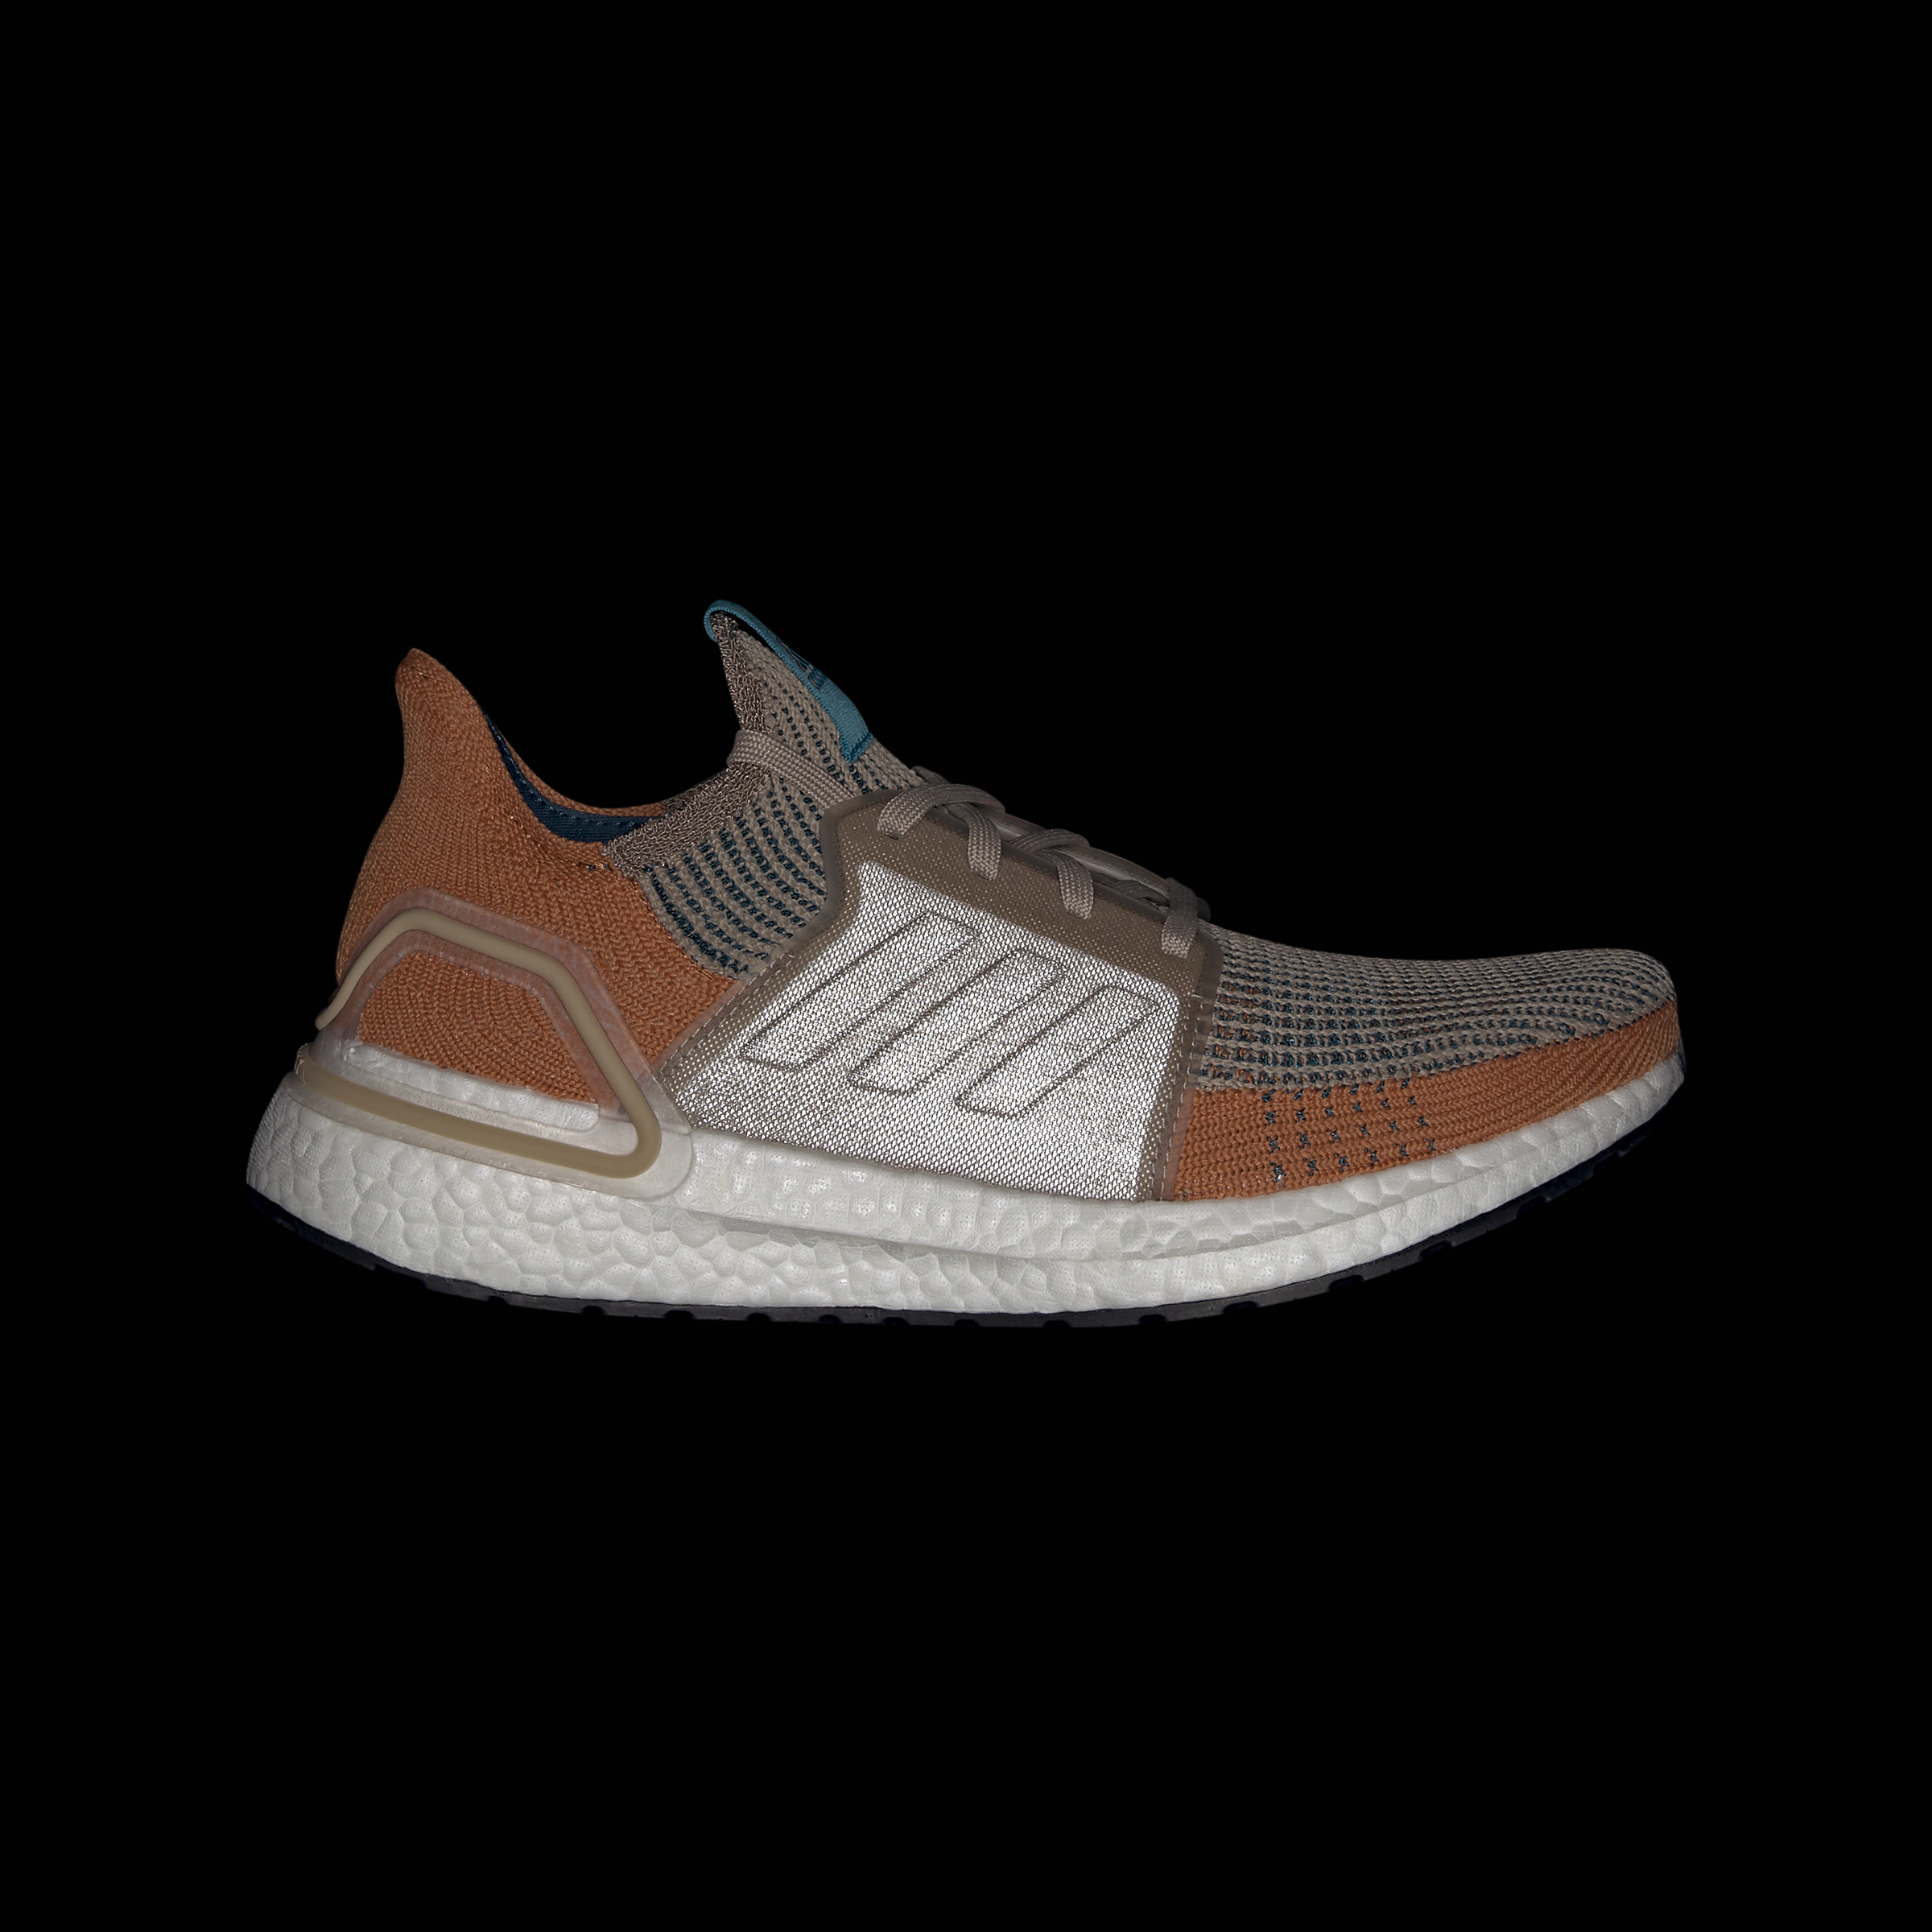 adidas-Ultraboost-19-Shoes-Athletic-amp-Sneakers thumbnail 110